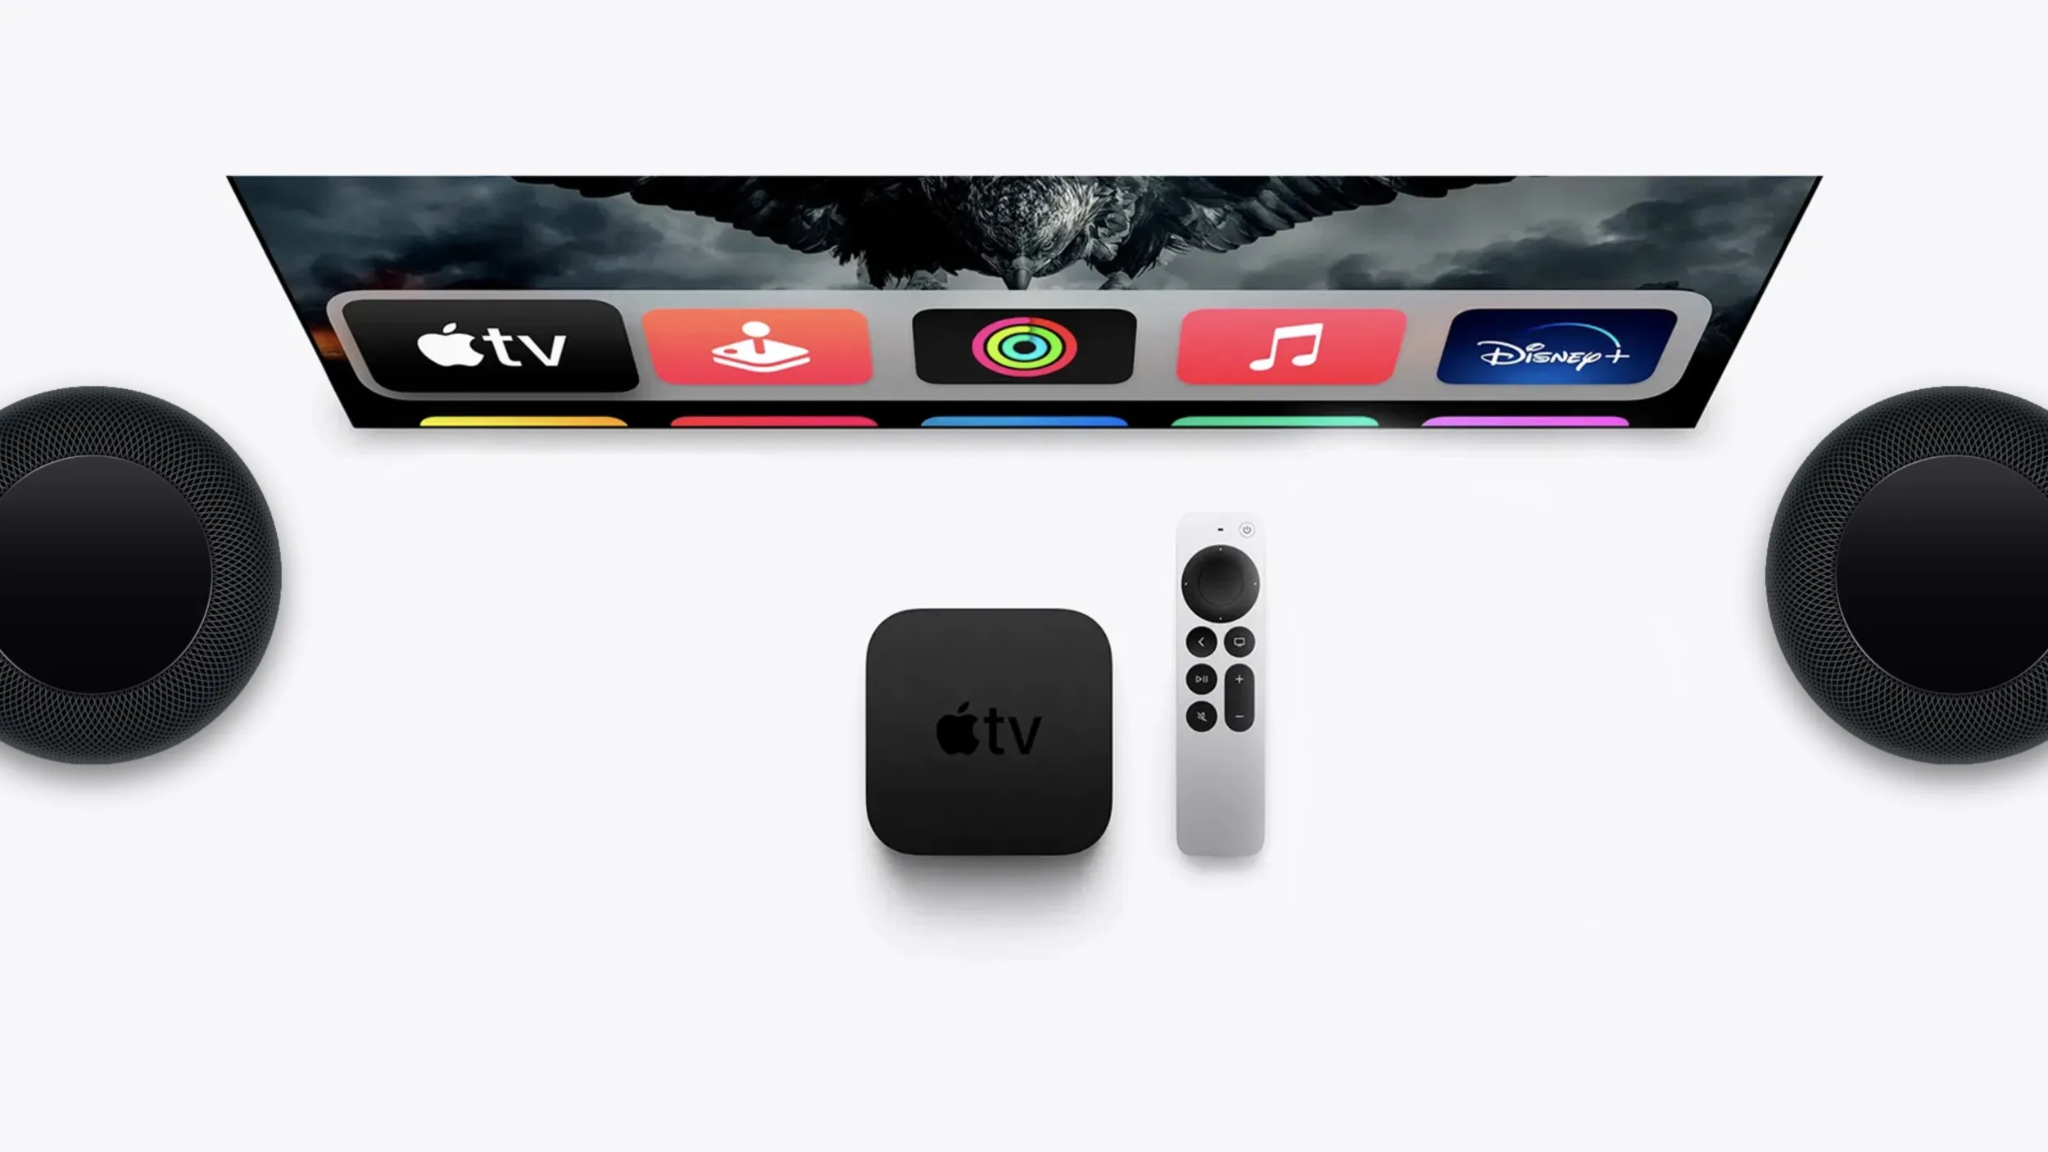 How much of the NFL season can you catch on your Apple TV?